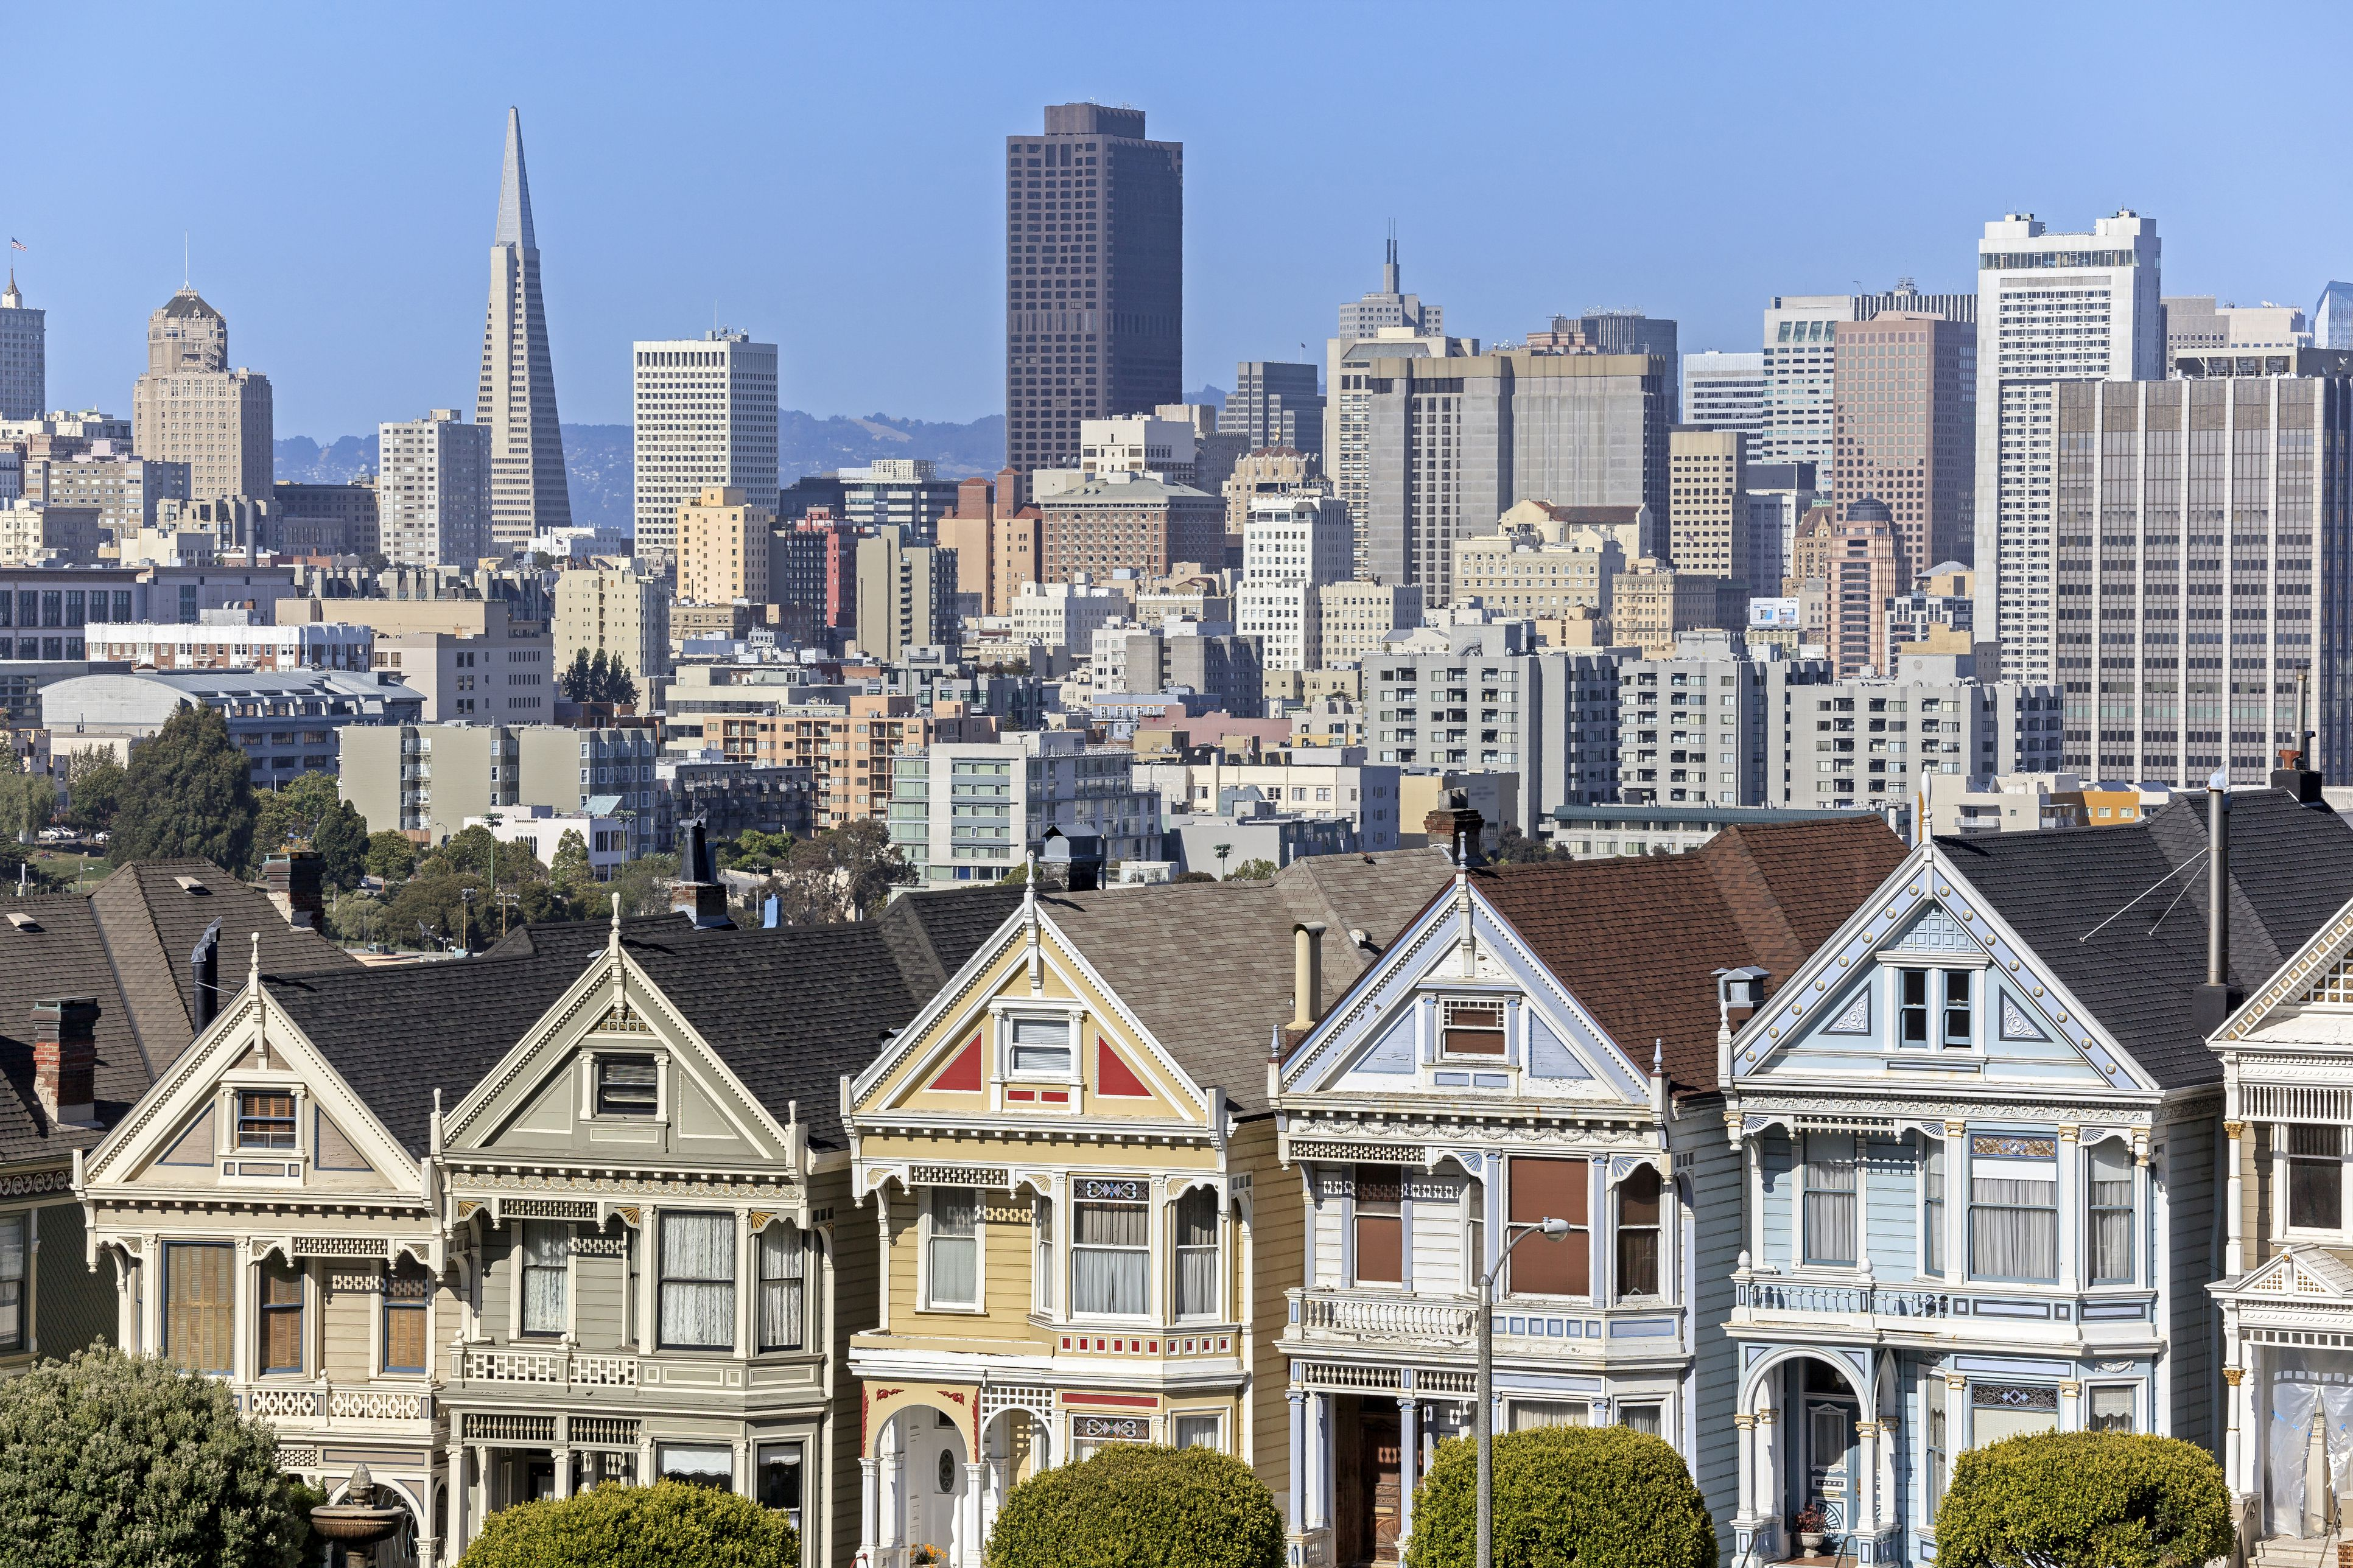 San Francisco, Alamo Square, Victorian houses known as the Painted Ladies, the San Francisco Financial District skyline in the background